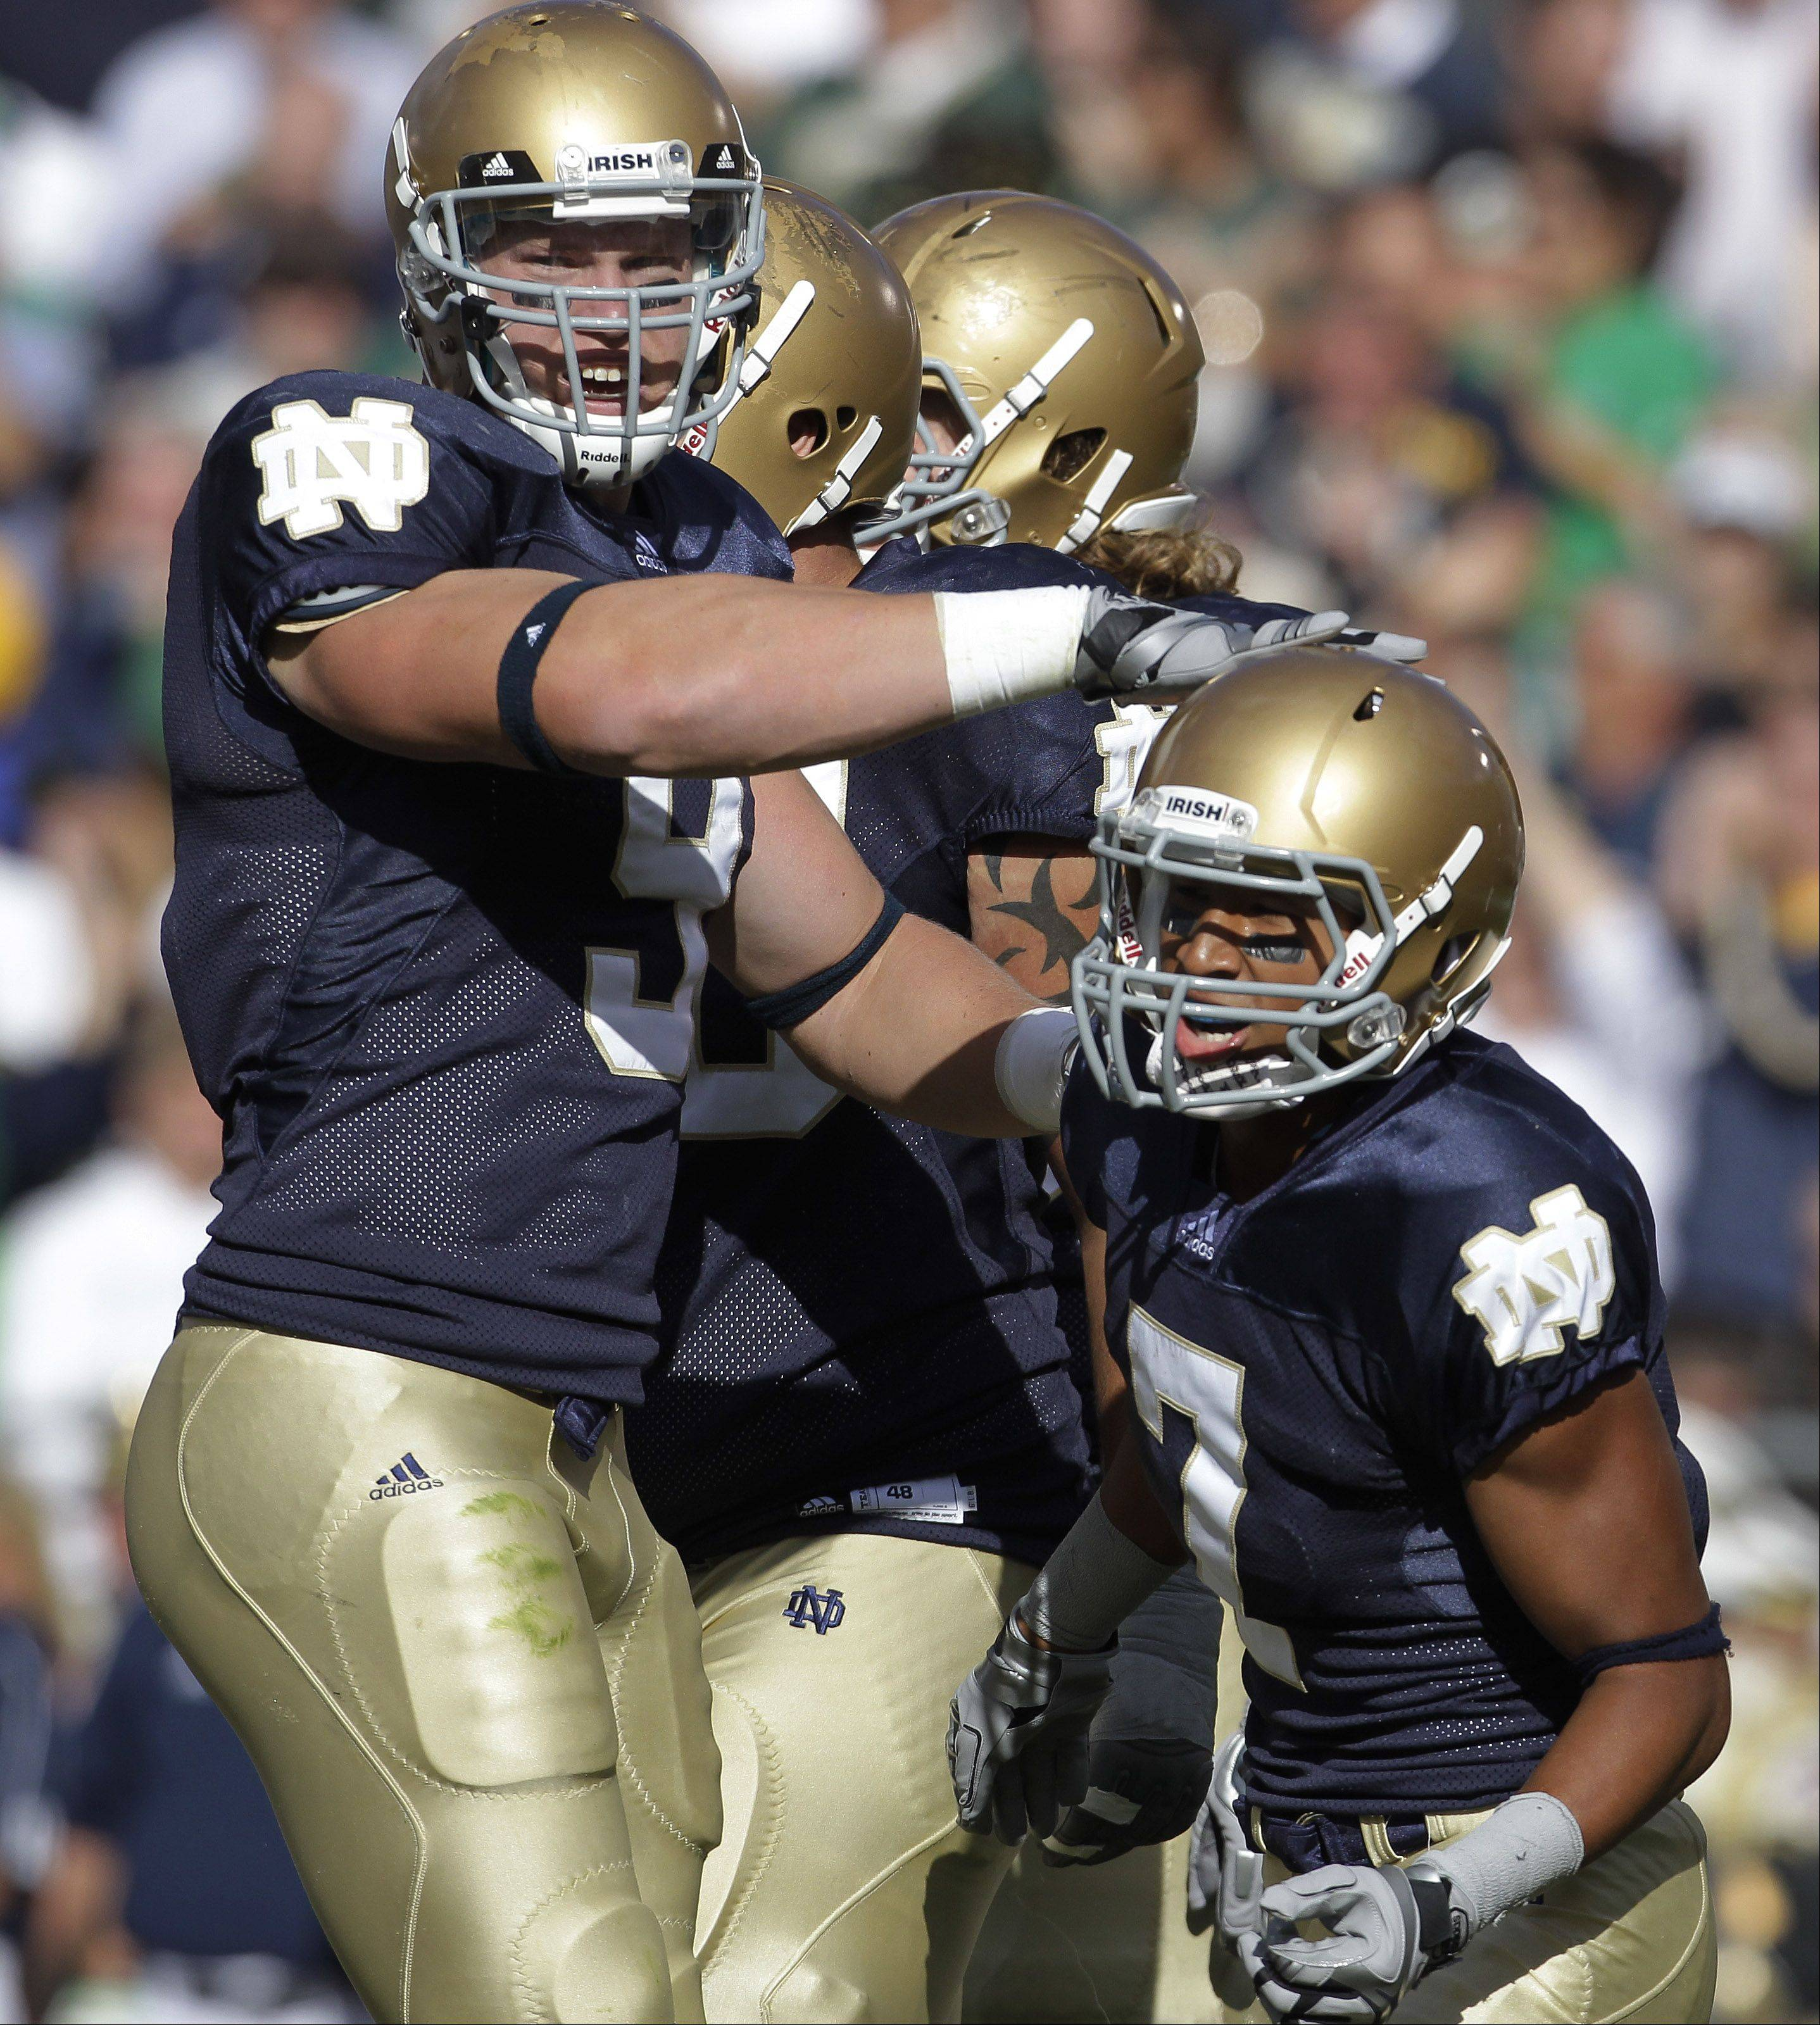 Notre Dame wide receiver TJ Jones, right, is congratulated by tight end Kyle Rudolph after Jones scored on a 5-yard touchdown reception during the third quarter of an NCAA college football game against Purdue in South Bend, Ind., Saturday, Sept. 4, 2010. (AP Photo/Darron Cummings)